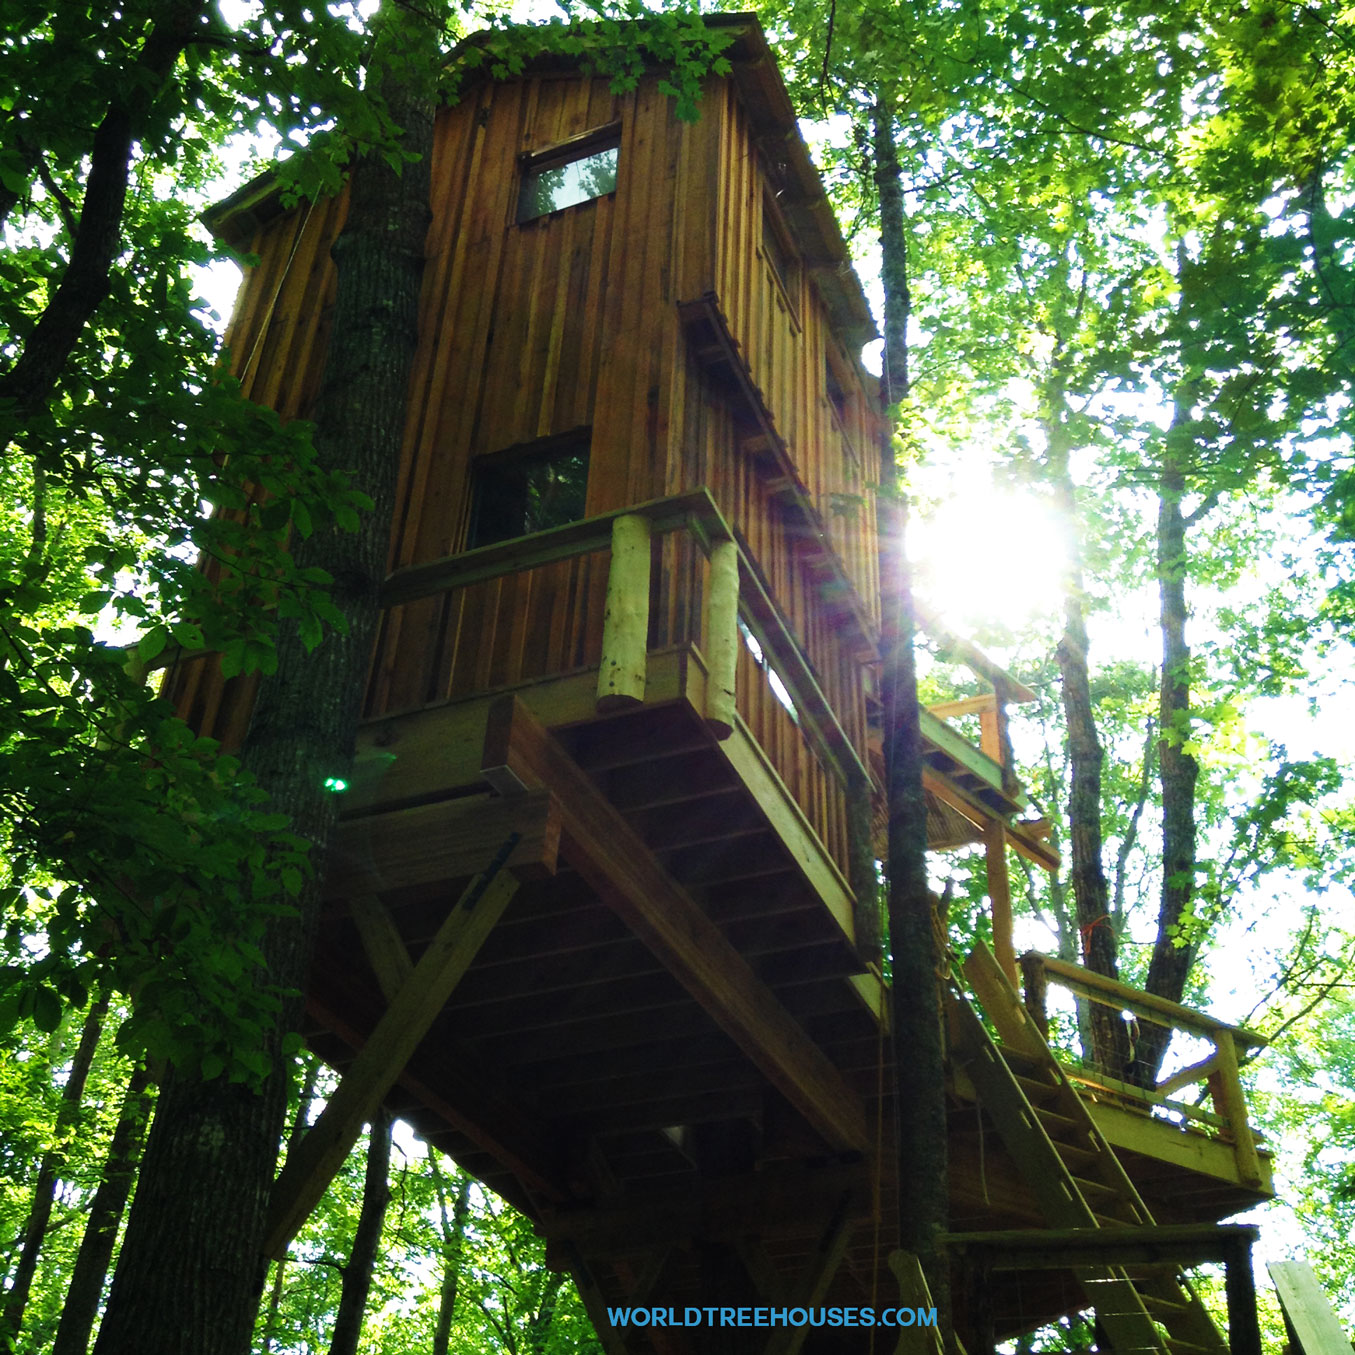 world treehouse brevard asheville - Biggest Treehouse In The World 2016